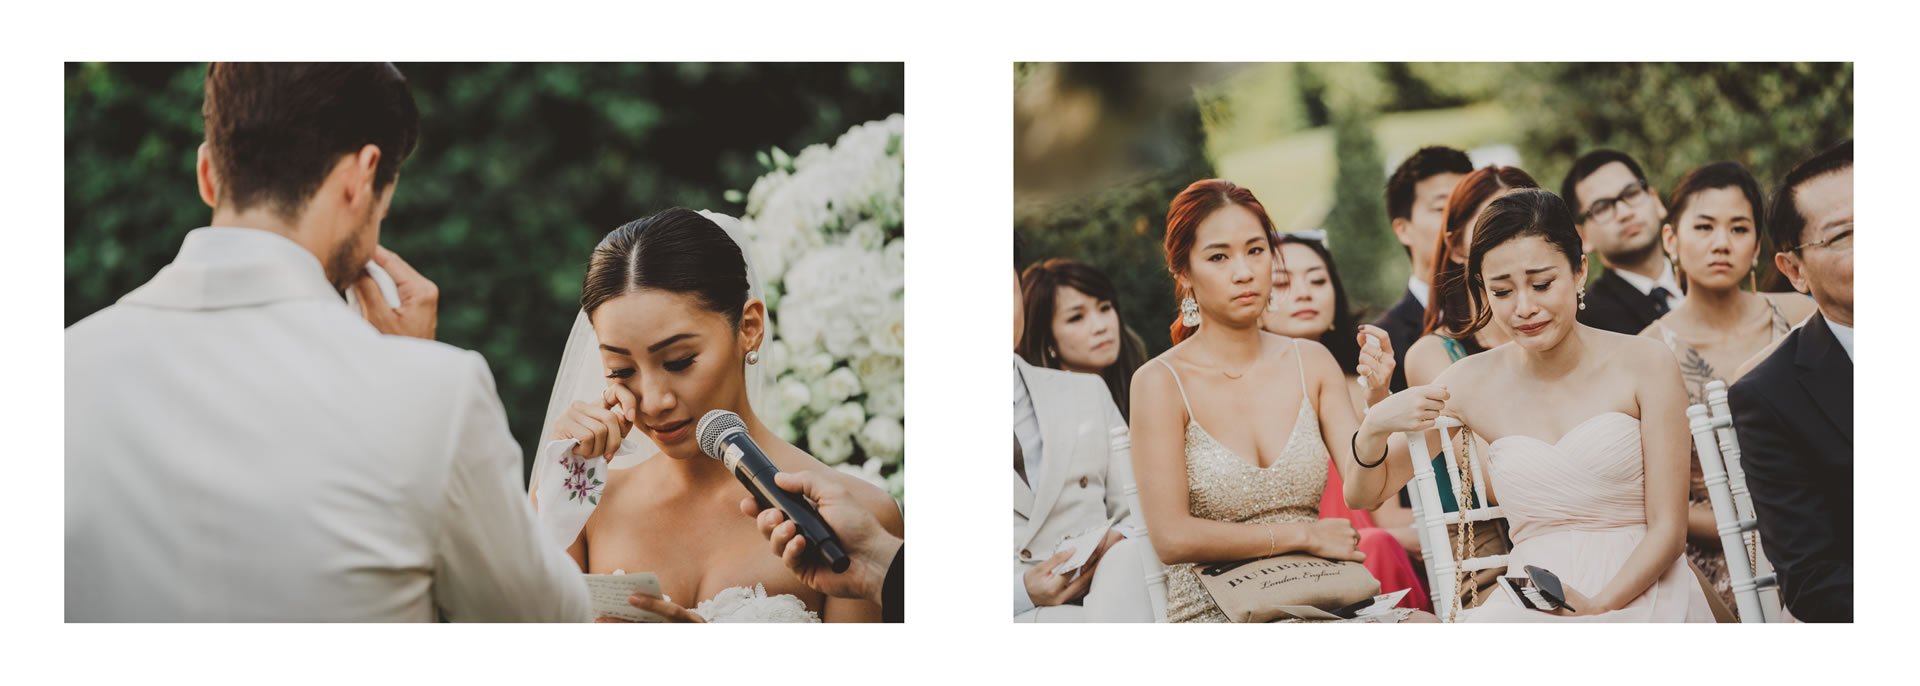 - 21 :: BEST OF 2018 WEDDING: A COLLECTION TO TELL ONE YEAR STORY :: Luxury wedding photography - 20 ::  - 21